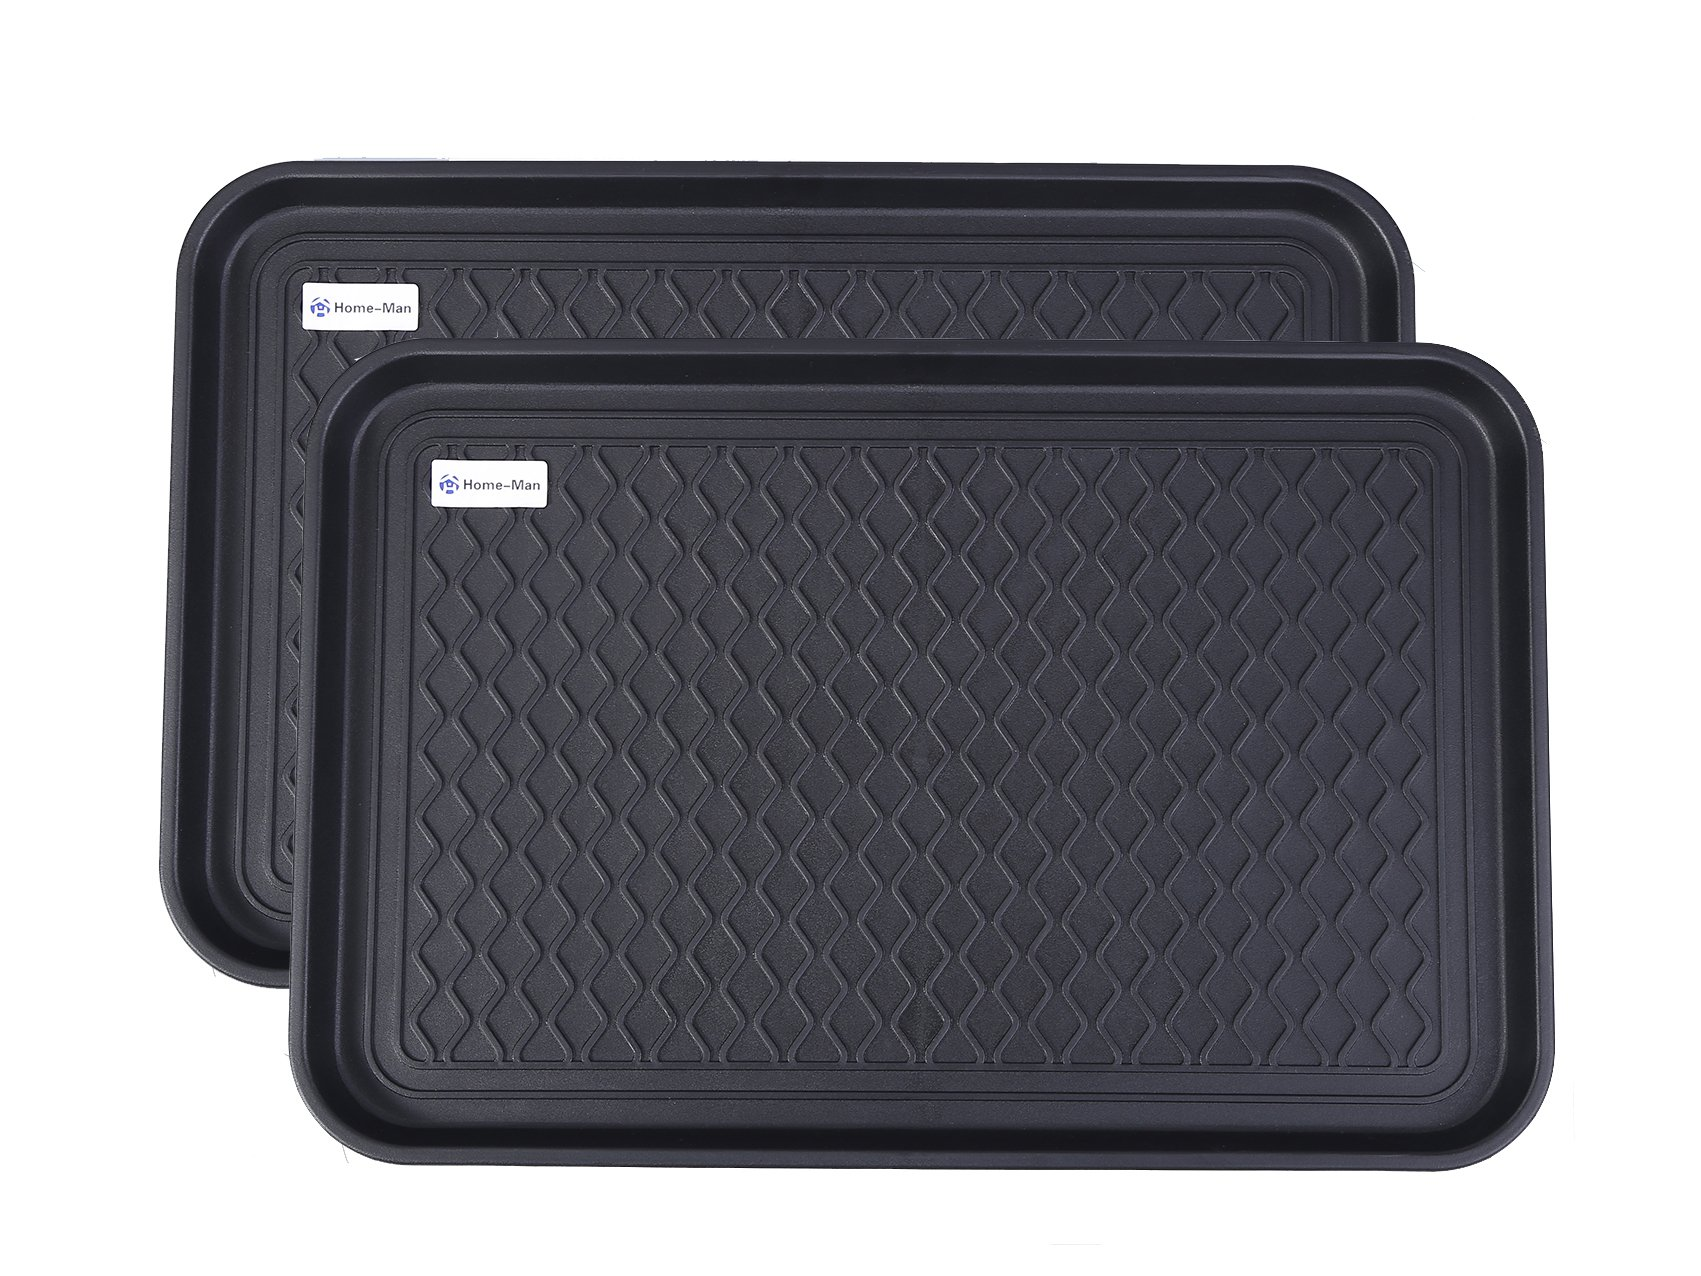 Home-Man Multi-Purpose Boot Tray Mat,Shoe Tray Mat,Pet Bowl Tray,Waterproof Trays for Indoor and Outdoor Floor Protection, 24'' x 15''/2 Pack by Home-Man